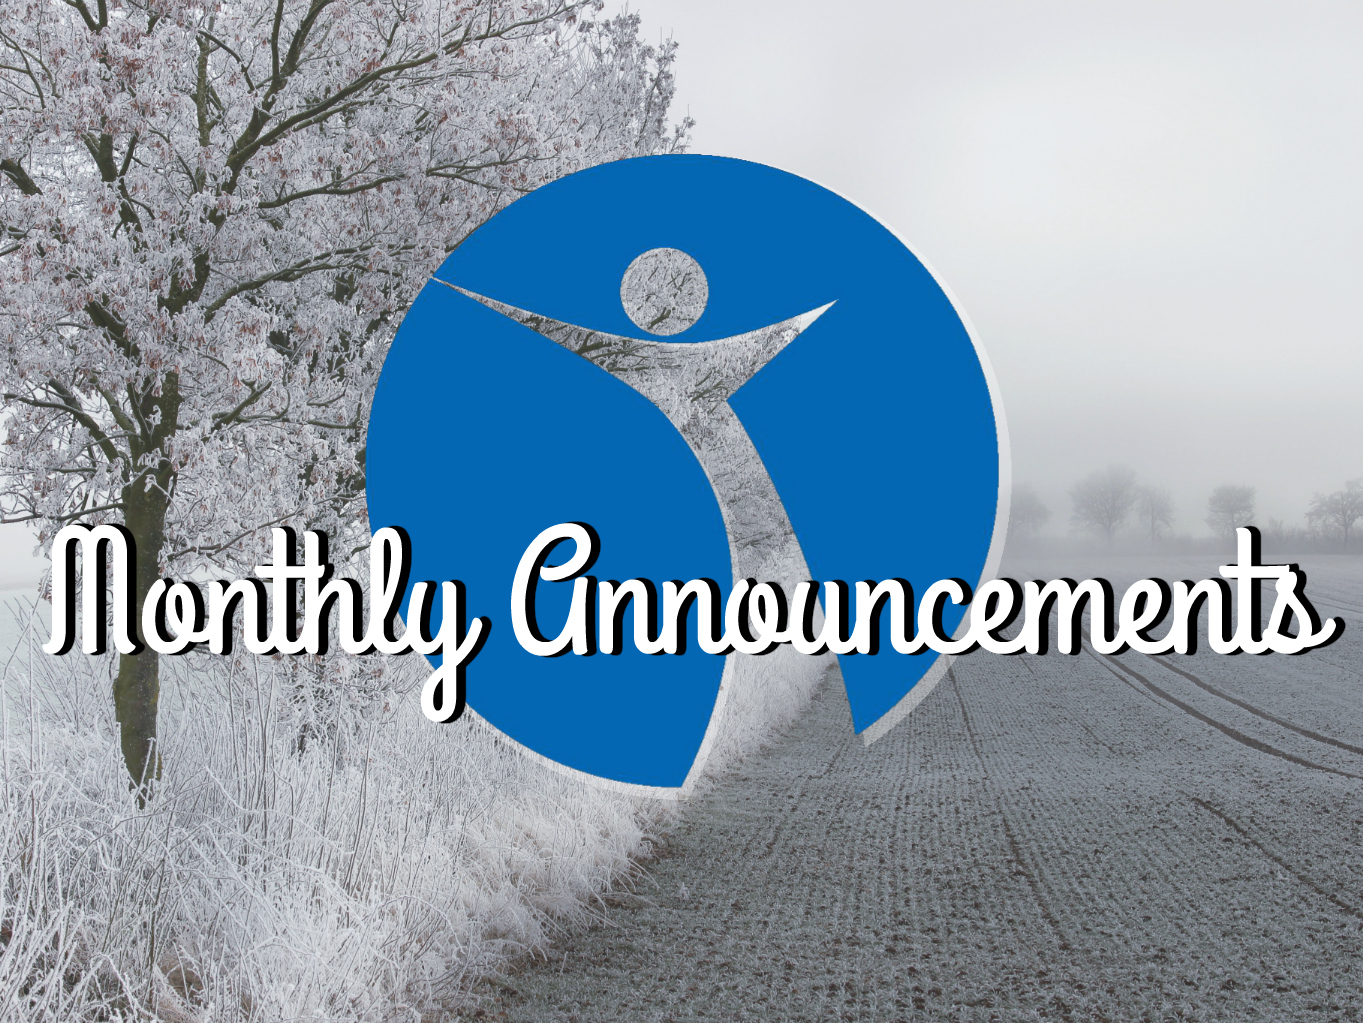 Monthly Announcements (4x3) 005.jpg